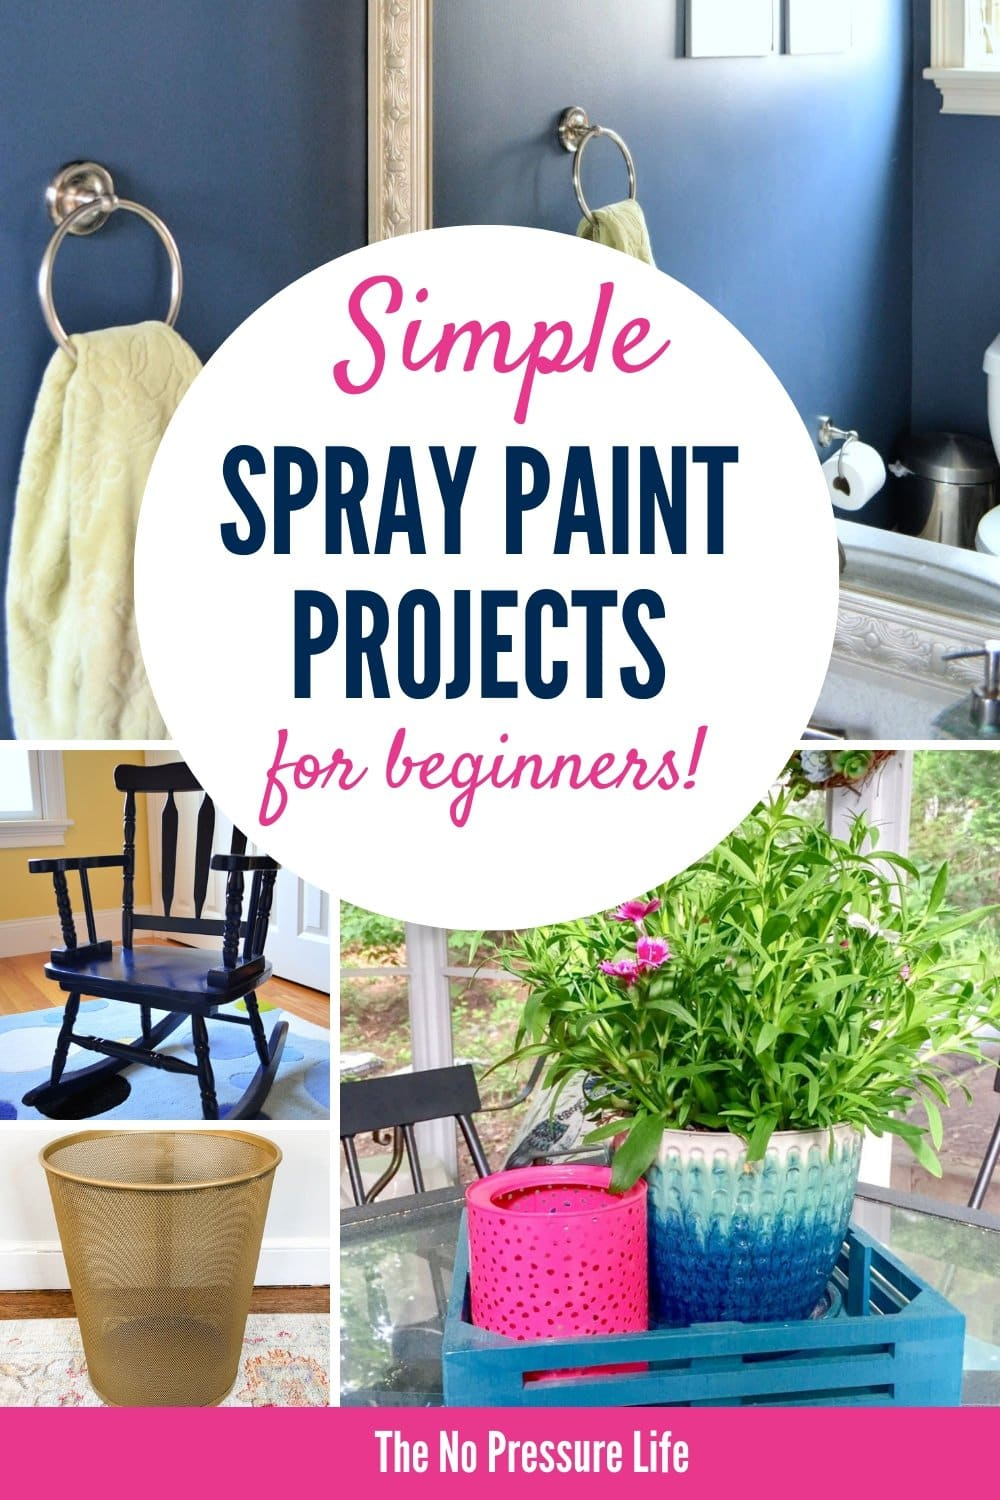 Easy DIY spray paint ideas and projects for beginners, including furniture, metal, wood trays, and mirrors